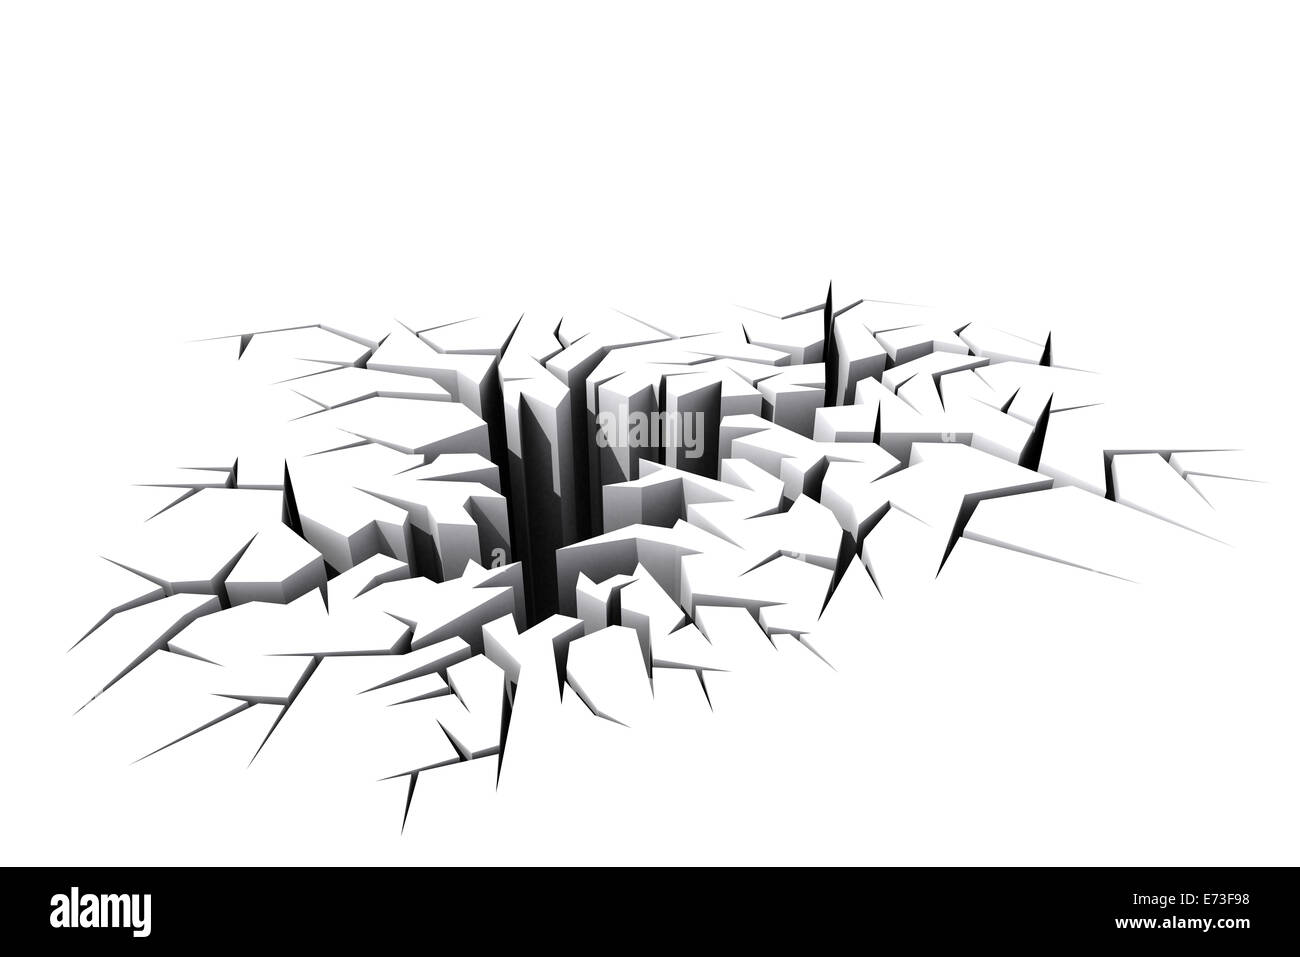 White Cracked Ground Floor Rendered In 3d Stock Photo